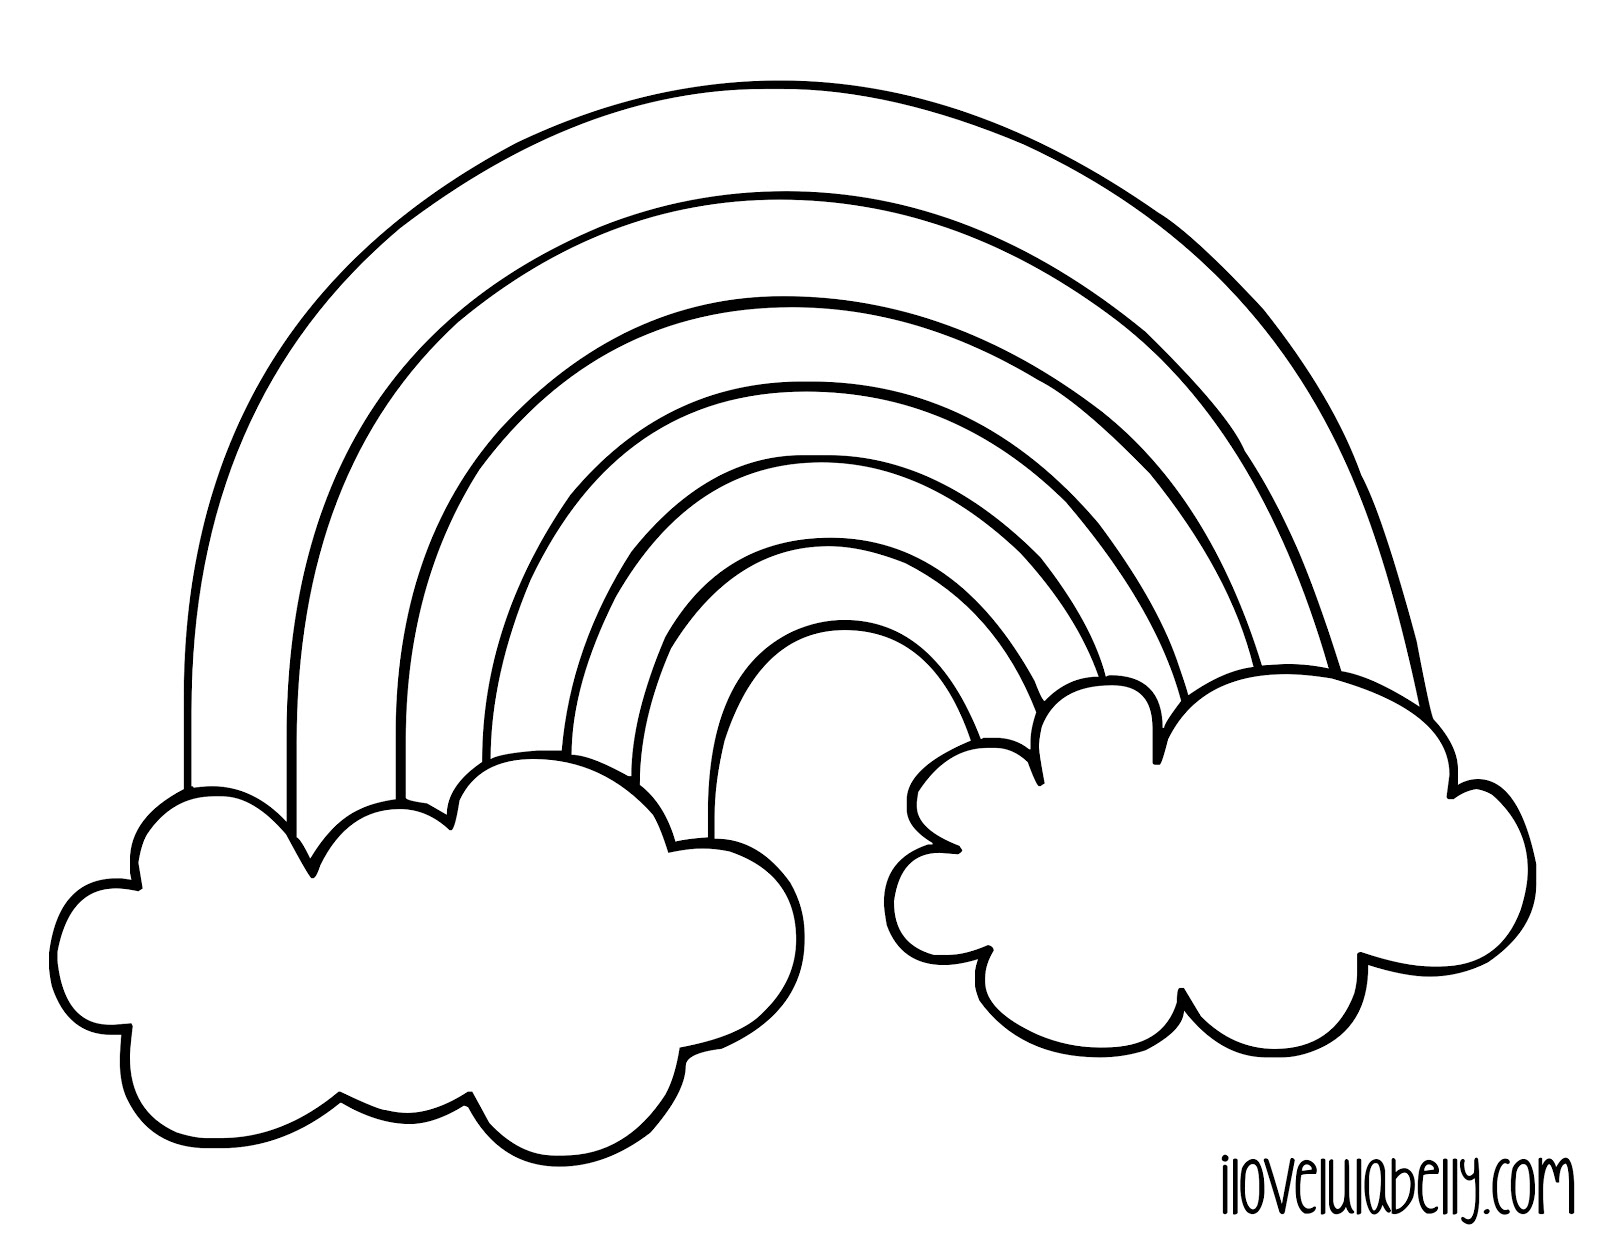 Blank rainbow color page coloring page for Coloring page rainbow